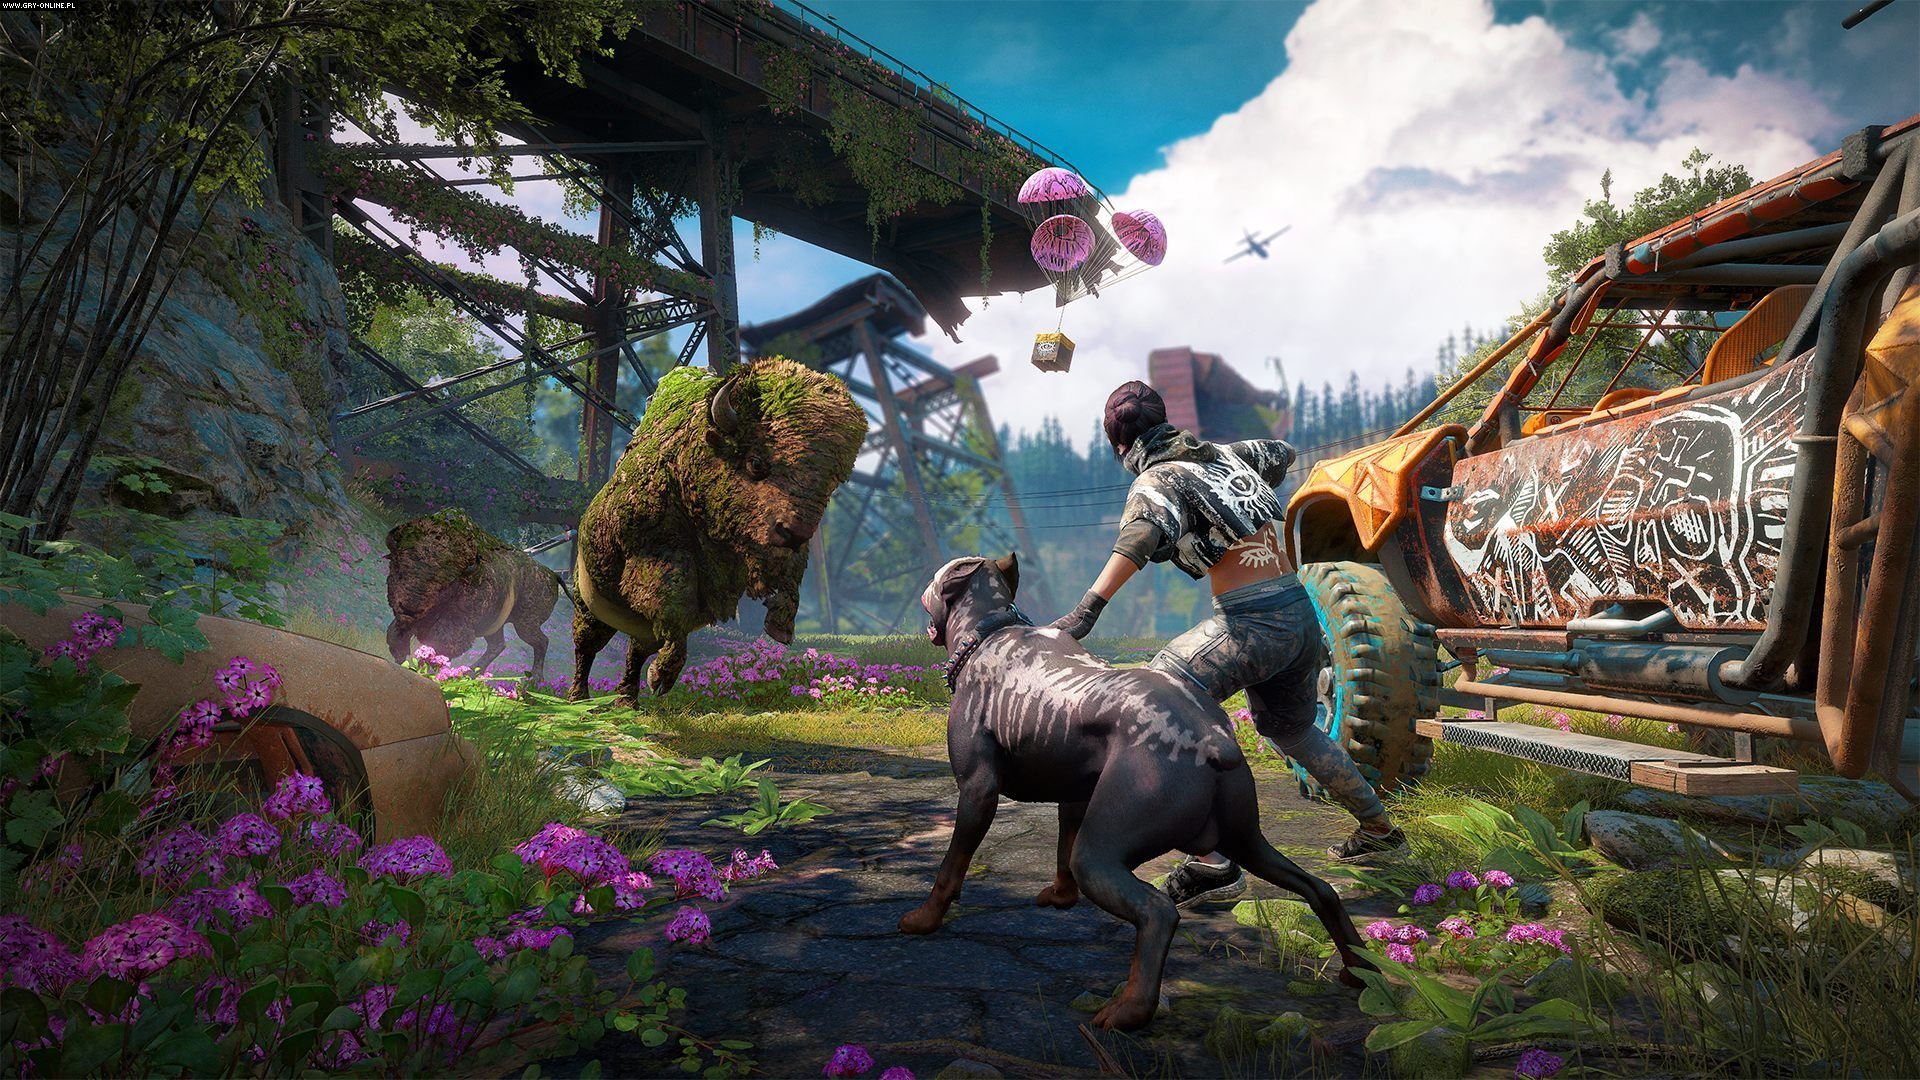 Far Cry: New Dawn PC, PS4, XONE Games Image 4/9, Ubisoft